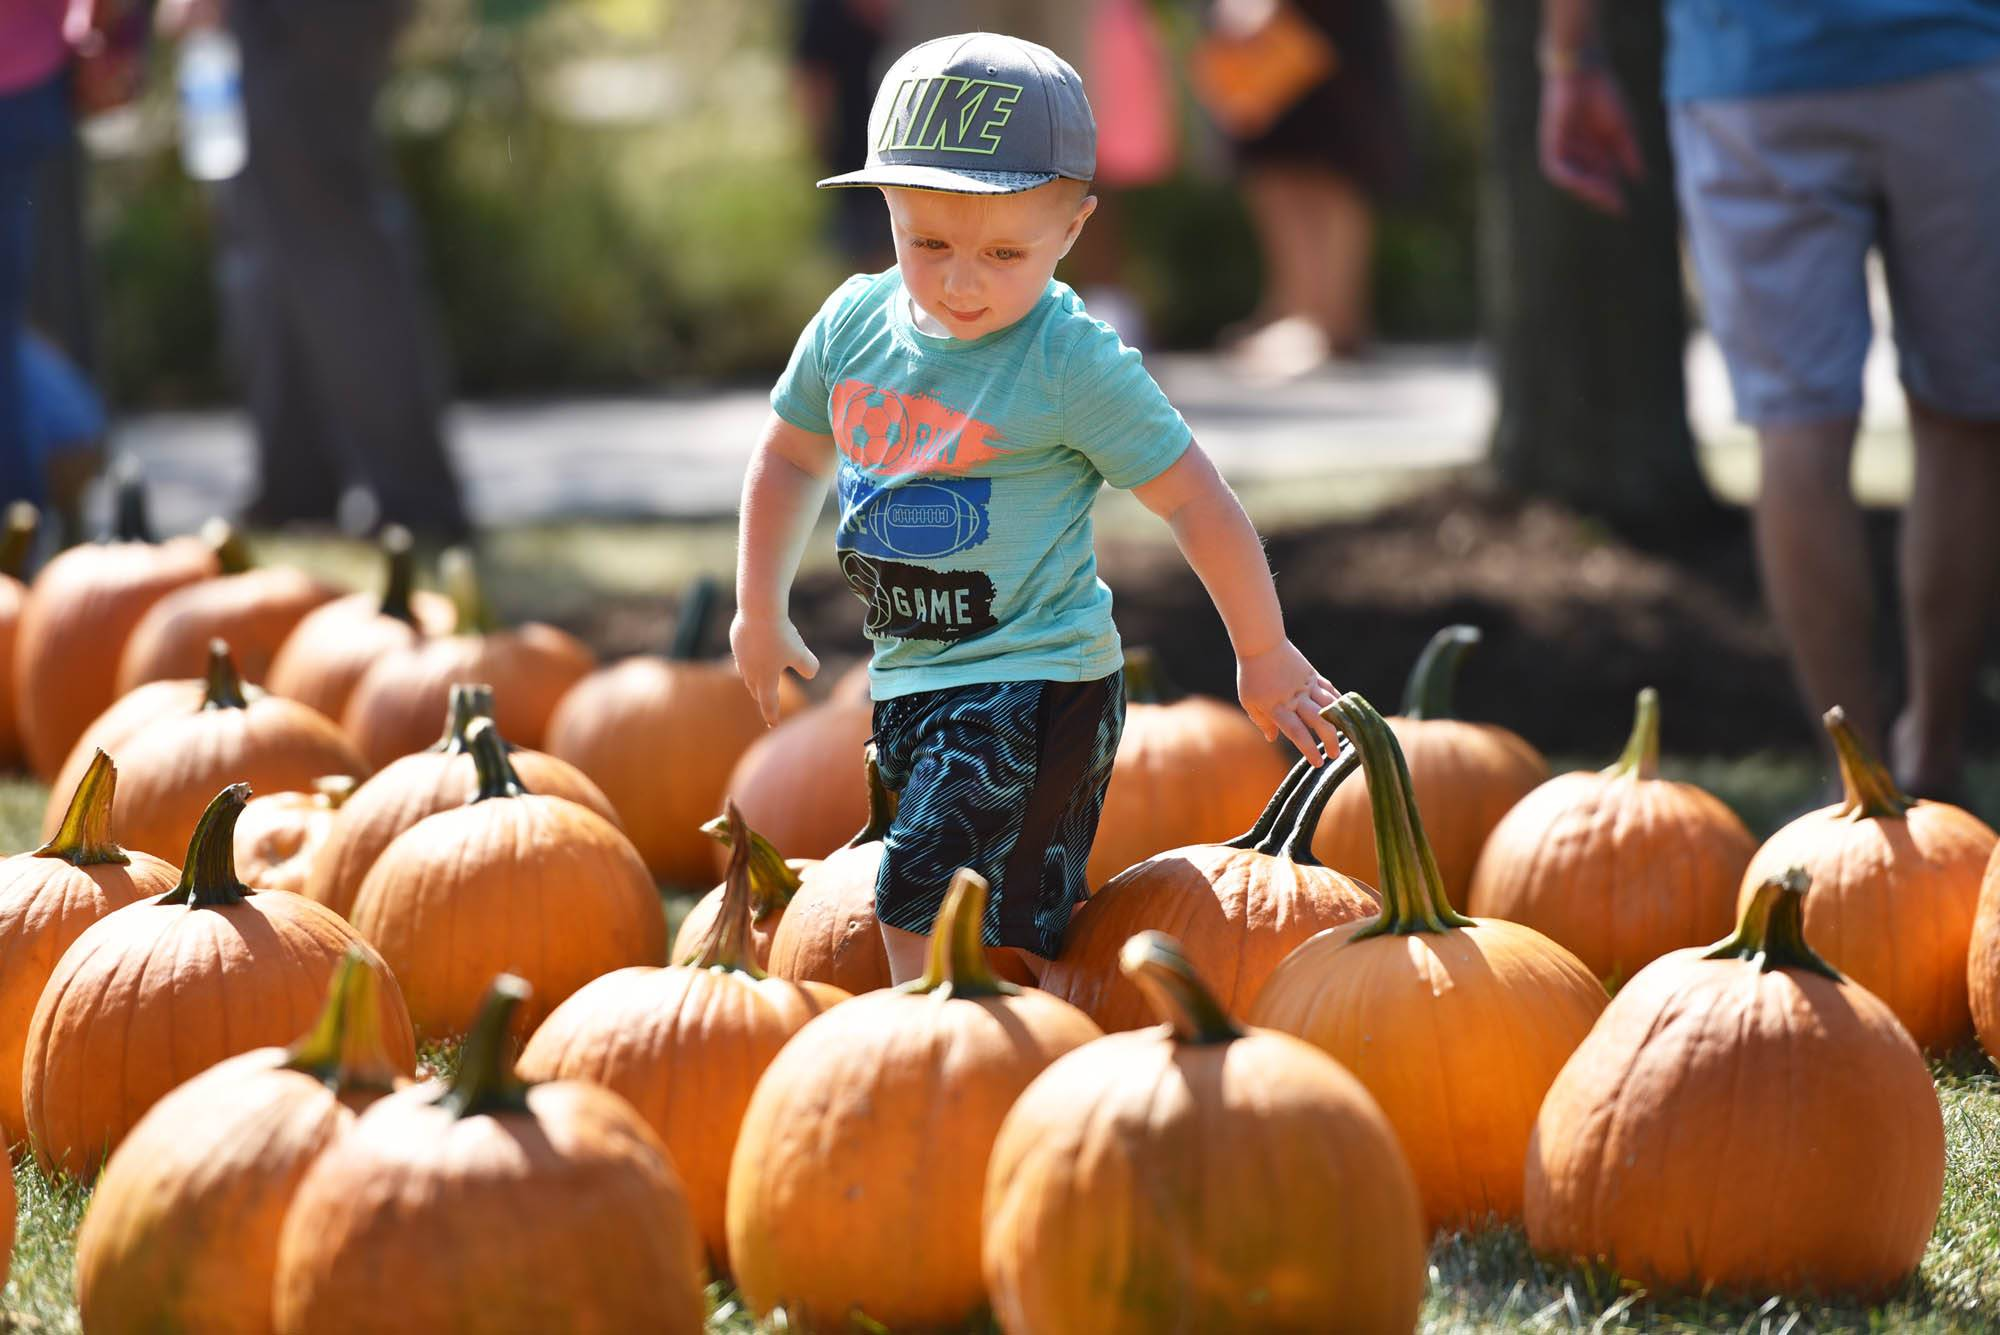 Grayson Goudzwaard, 2, goes in search of the best pumpkin Saturday at the Autumn Fair at Peck Farm Park in Geneva. He was with his mother, Amanda, from Naperville.